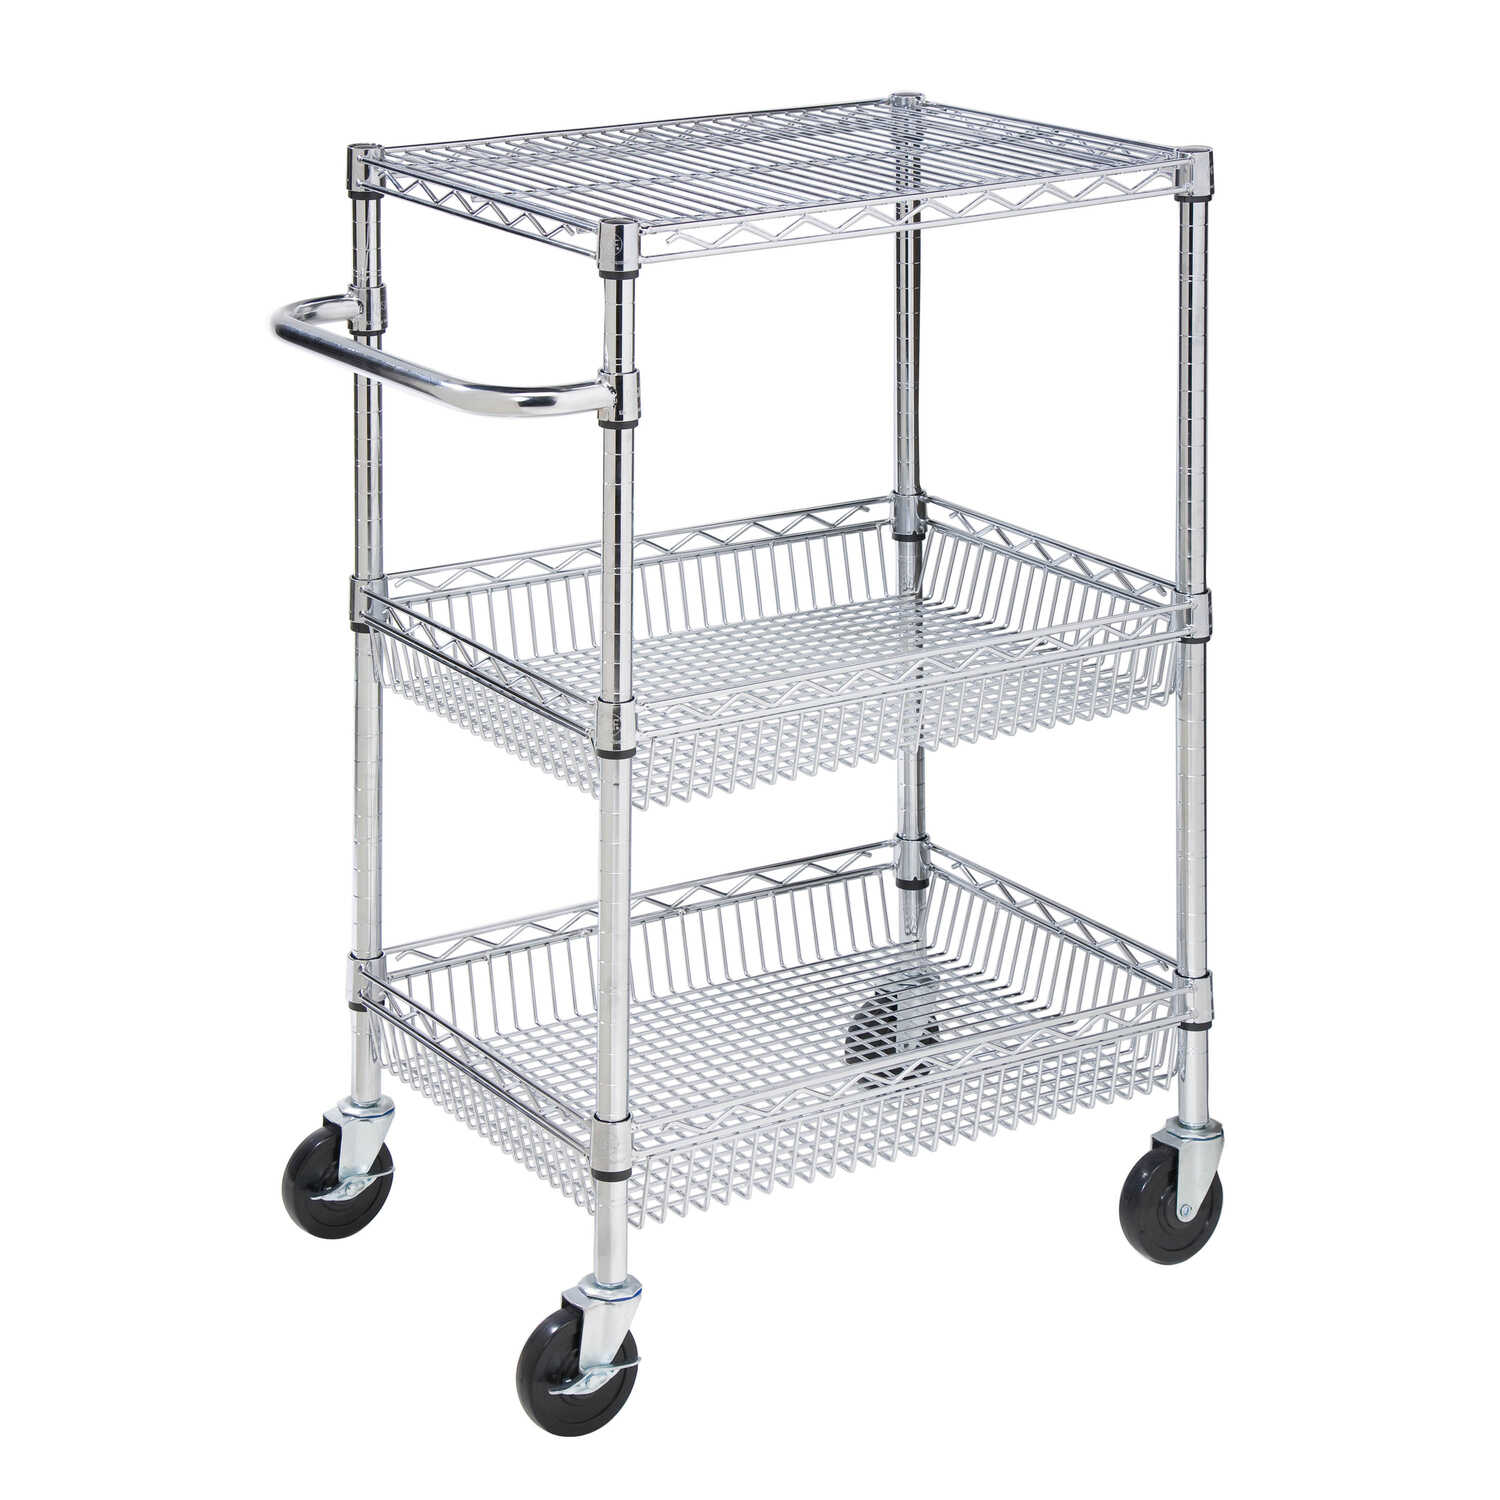 Honey Can Do  40 in. H x 18 in. W x 24 in. D Utility Cart